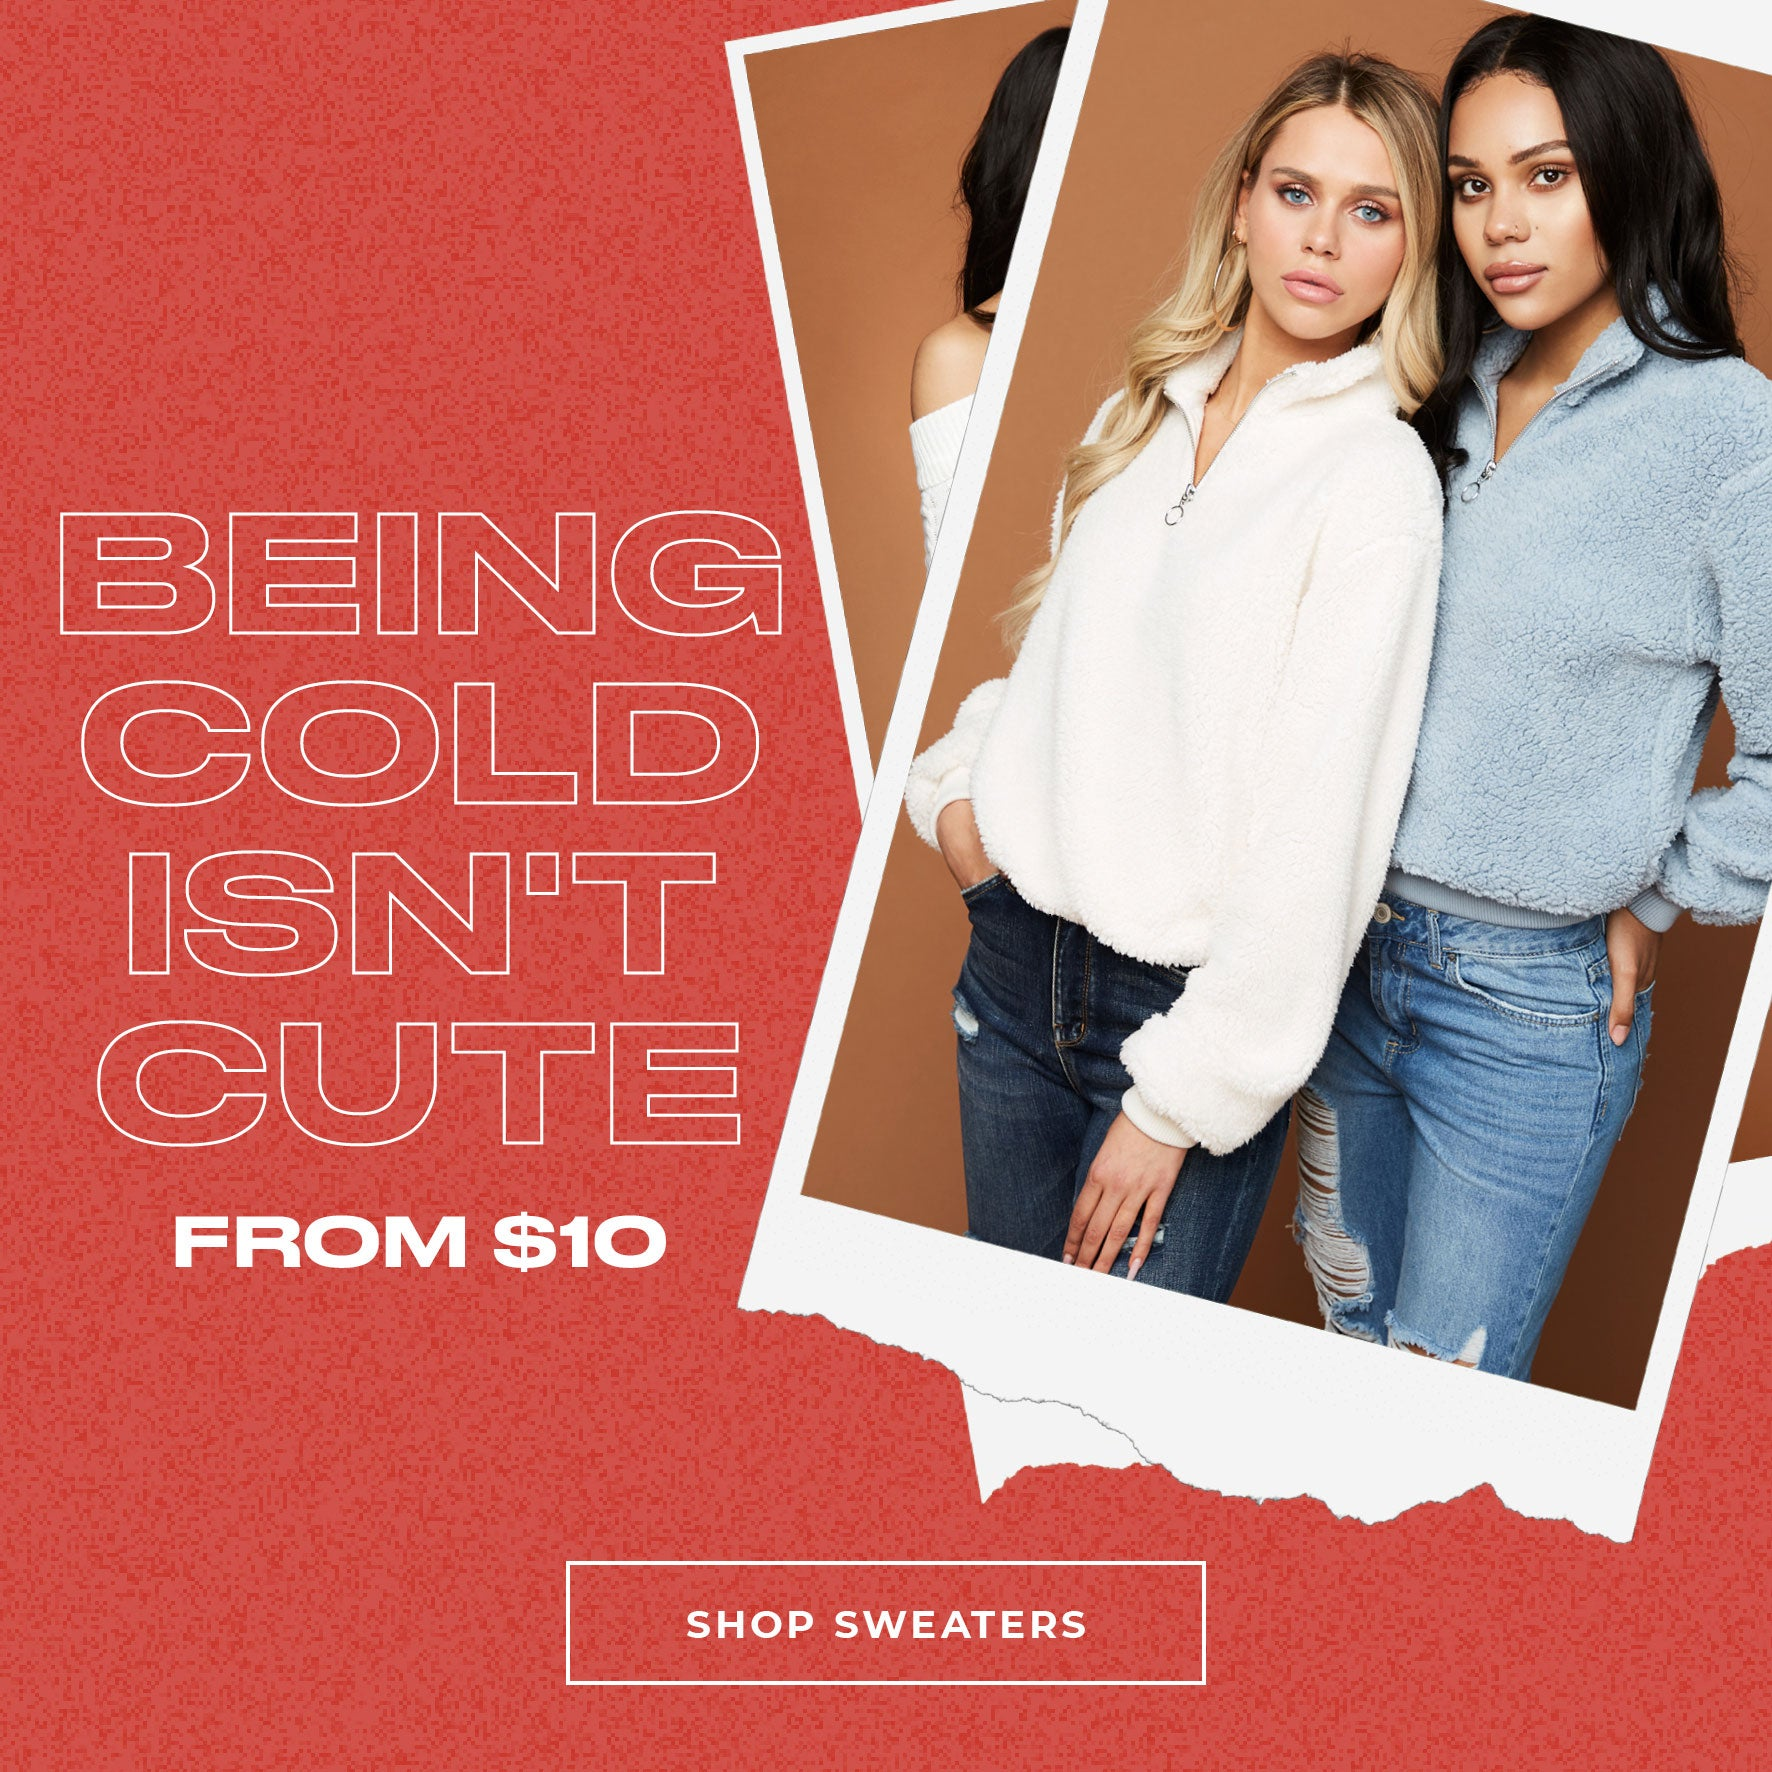 Charlotte Russe | Being Cold Isn't Cute - From $10 - Shop Sweaters